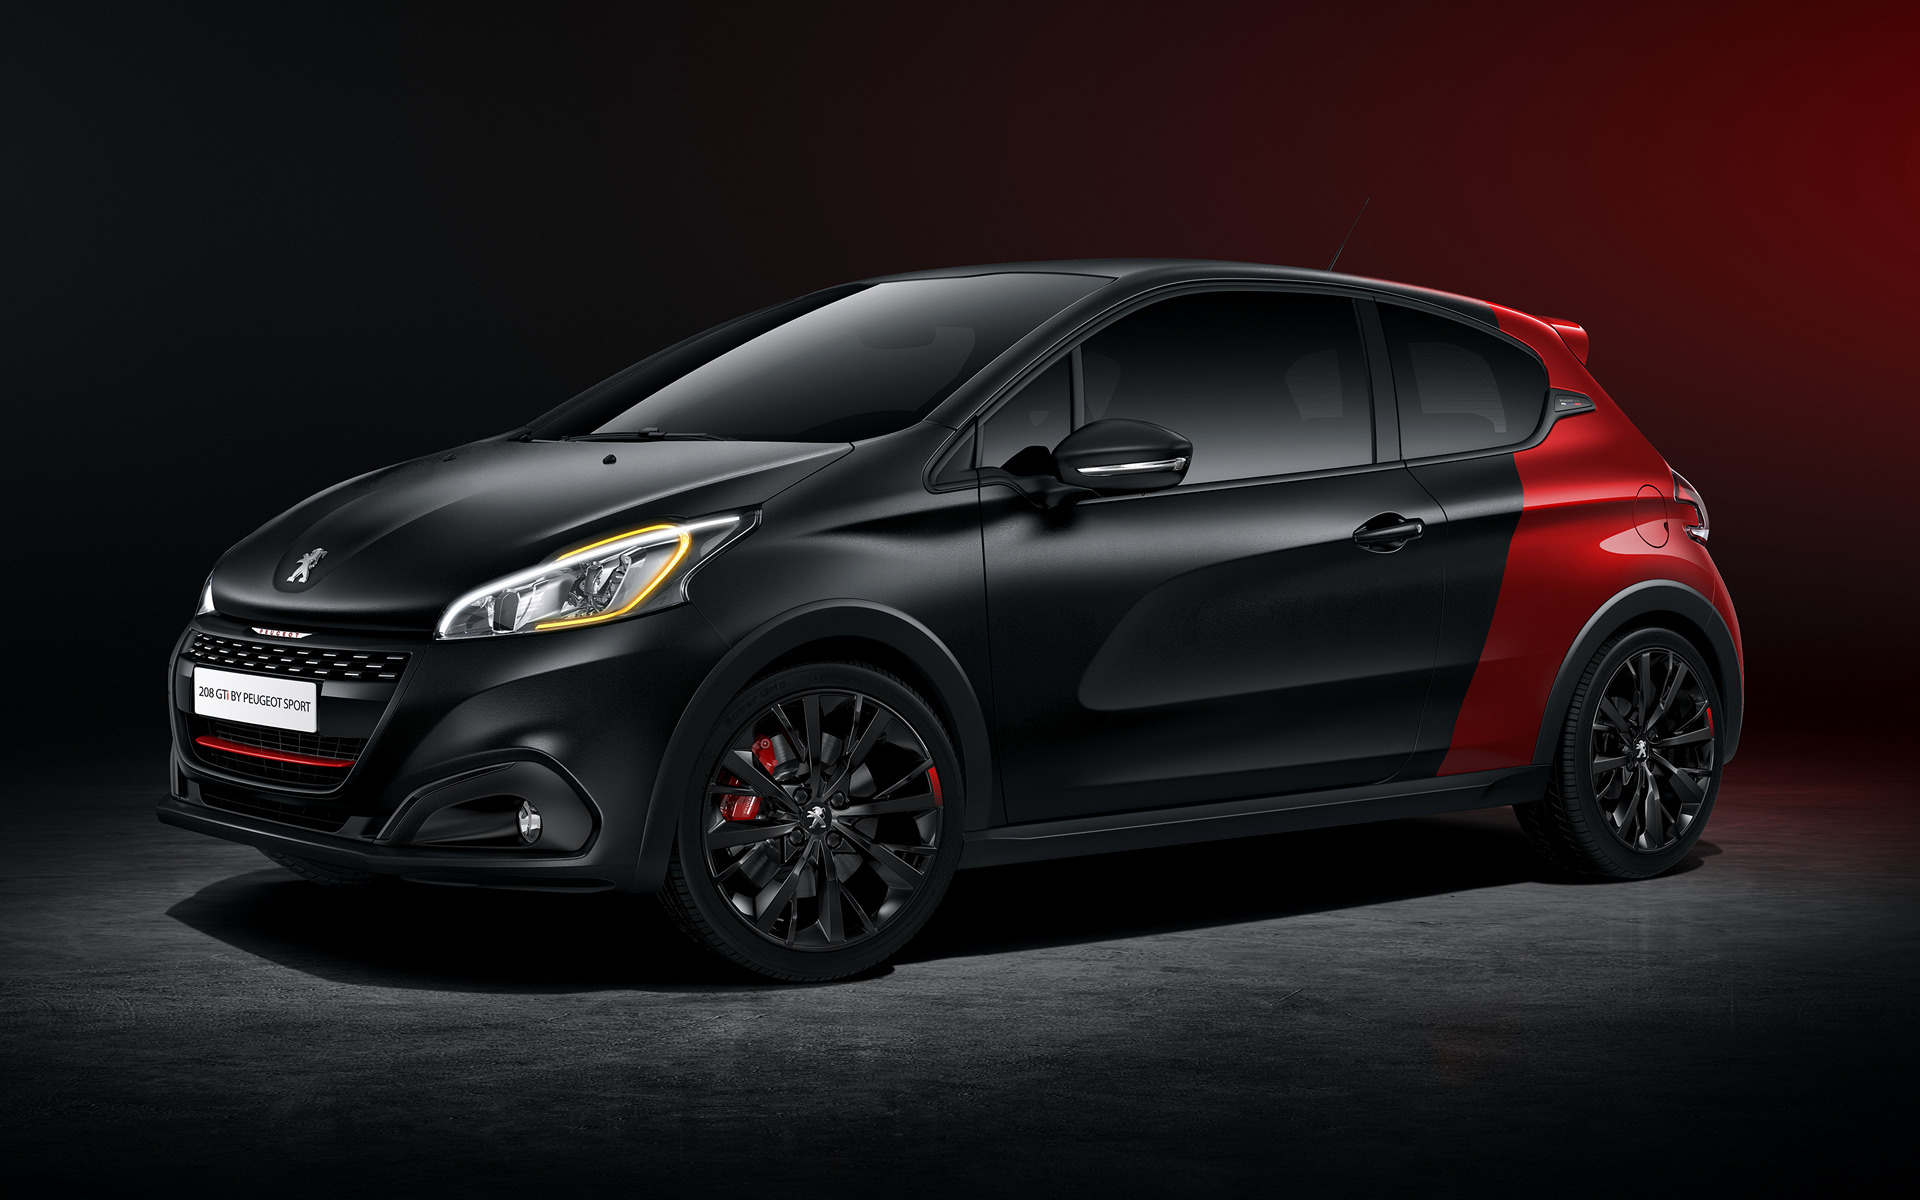 2015 Peugeot 208 Gti By Peugeot Sport Wallpapers And Hd